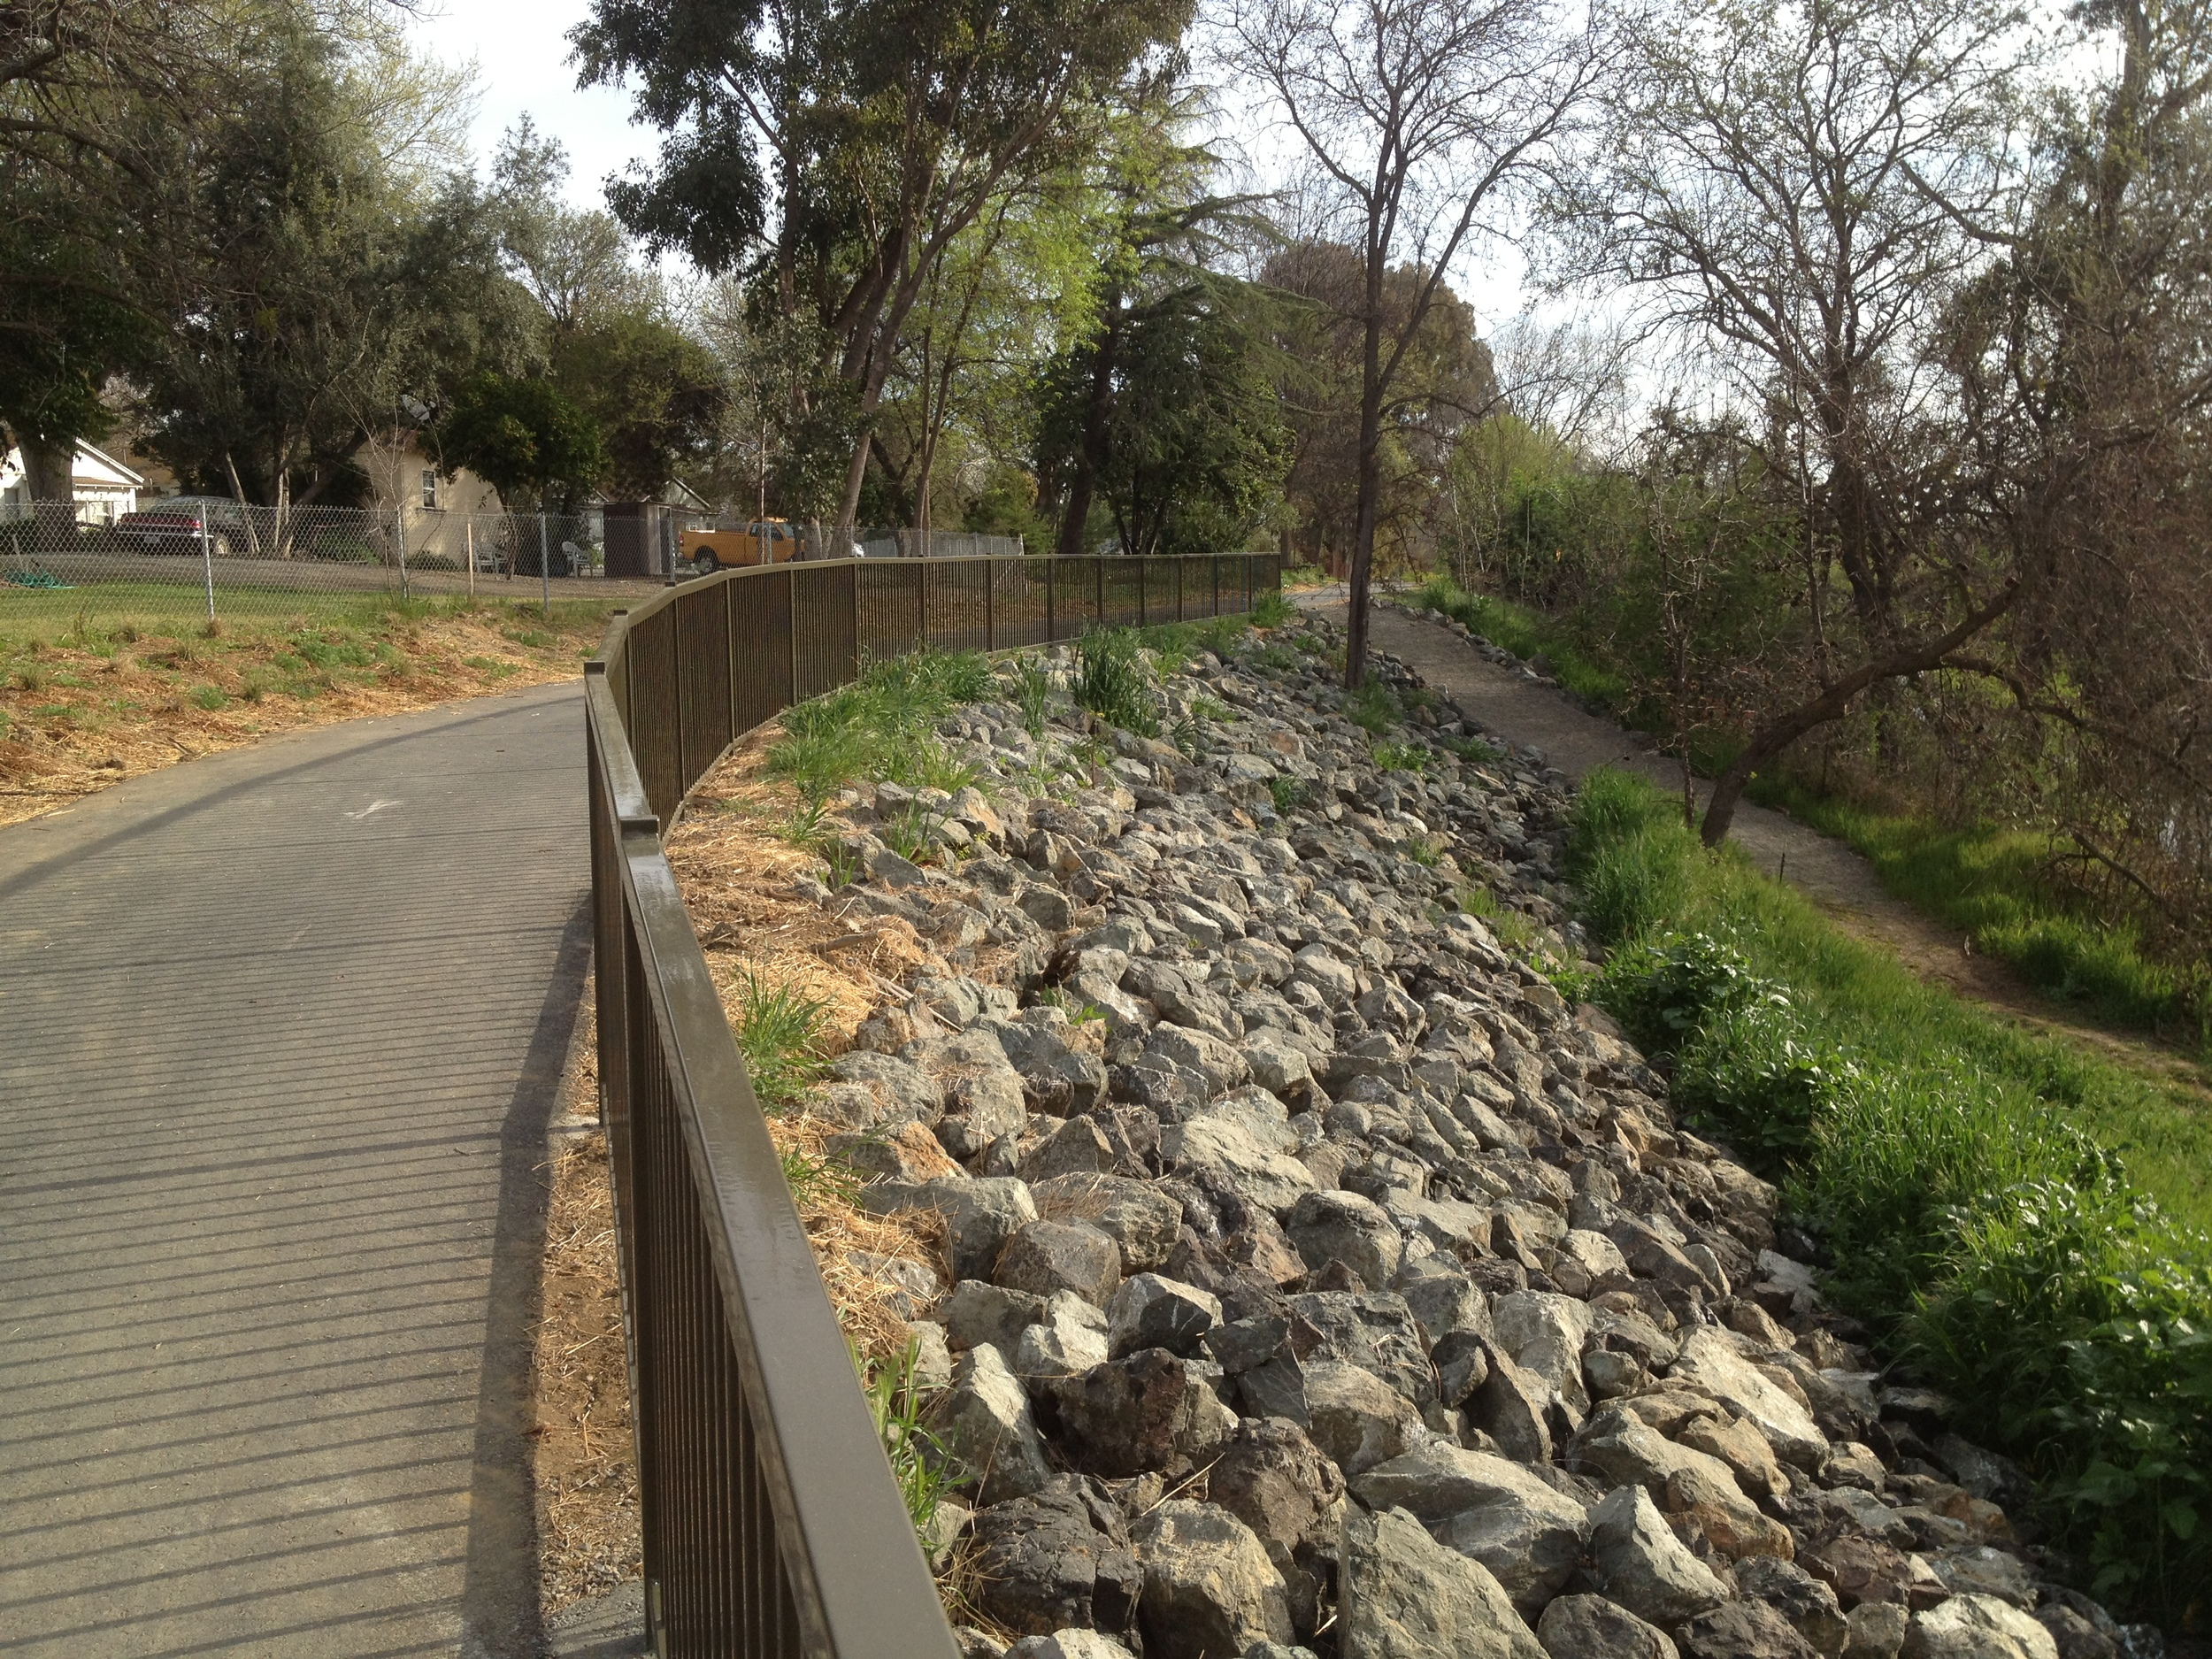 Pathway near community center with railing, Rip Rap slope and access path down to creek floodplain